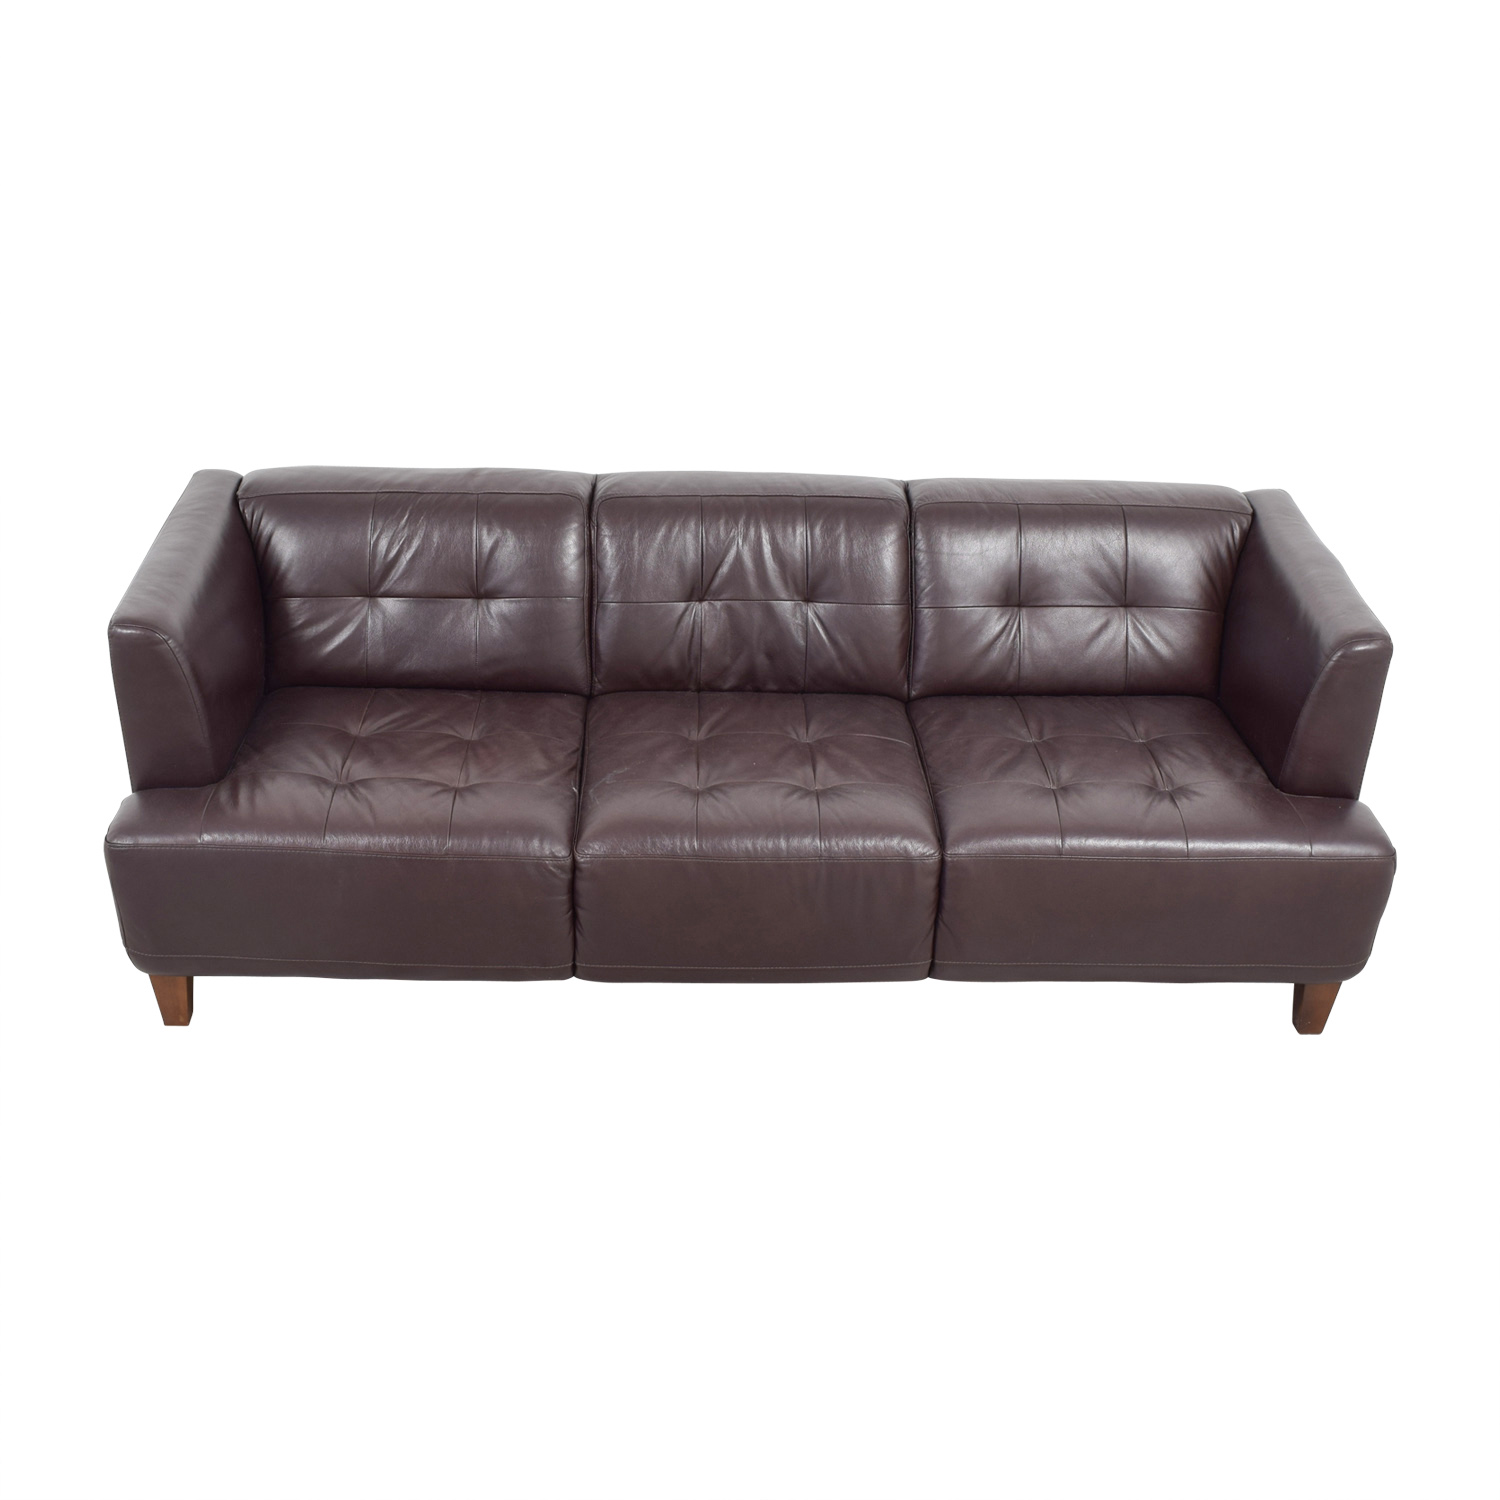 Incroyable ... Shop Macyu0027s Brown Tufted Leather Couch Macyu0027s ...